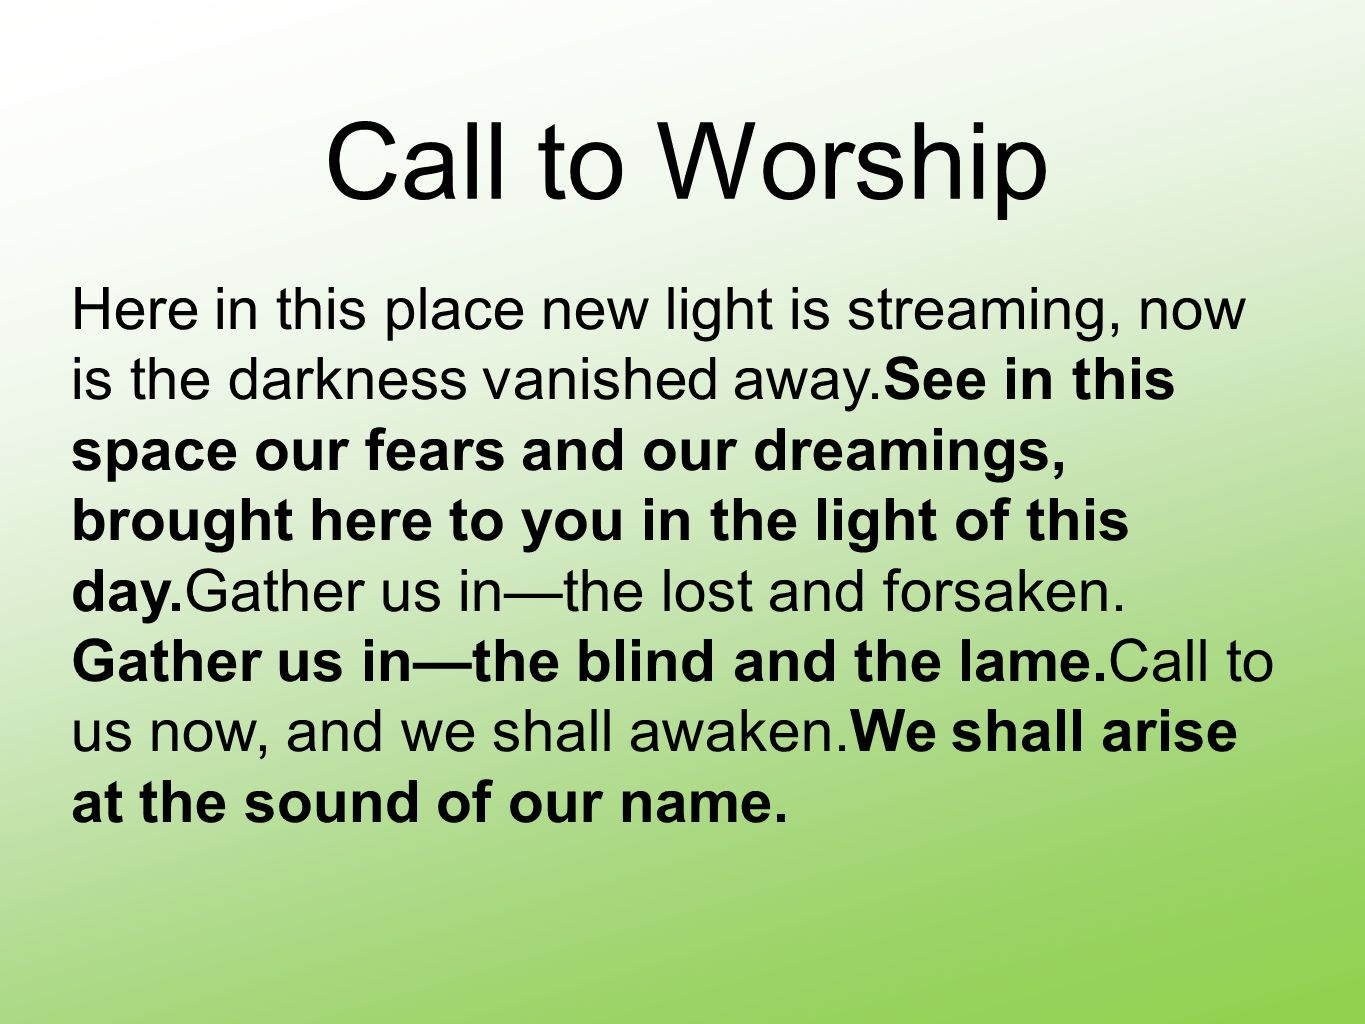 Call to Worship Here in this place new light is streaming, now is the darkness vanished away.See in this space our fears and our dreamings, brought here to you in the light of this day.Gather us in—the lost and forsaken.